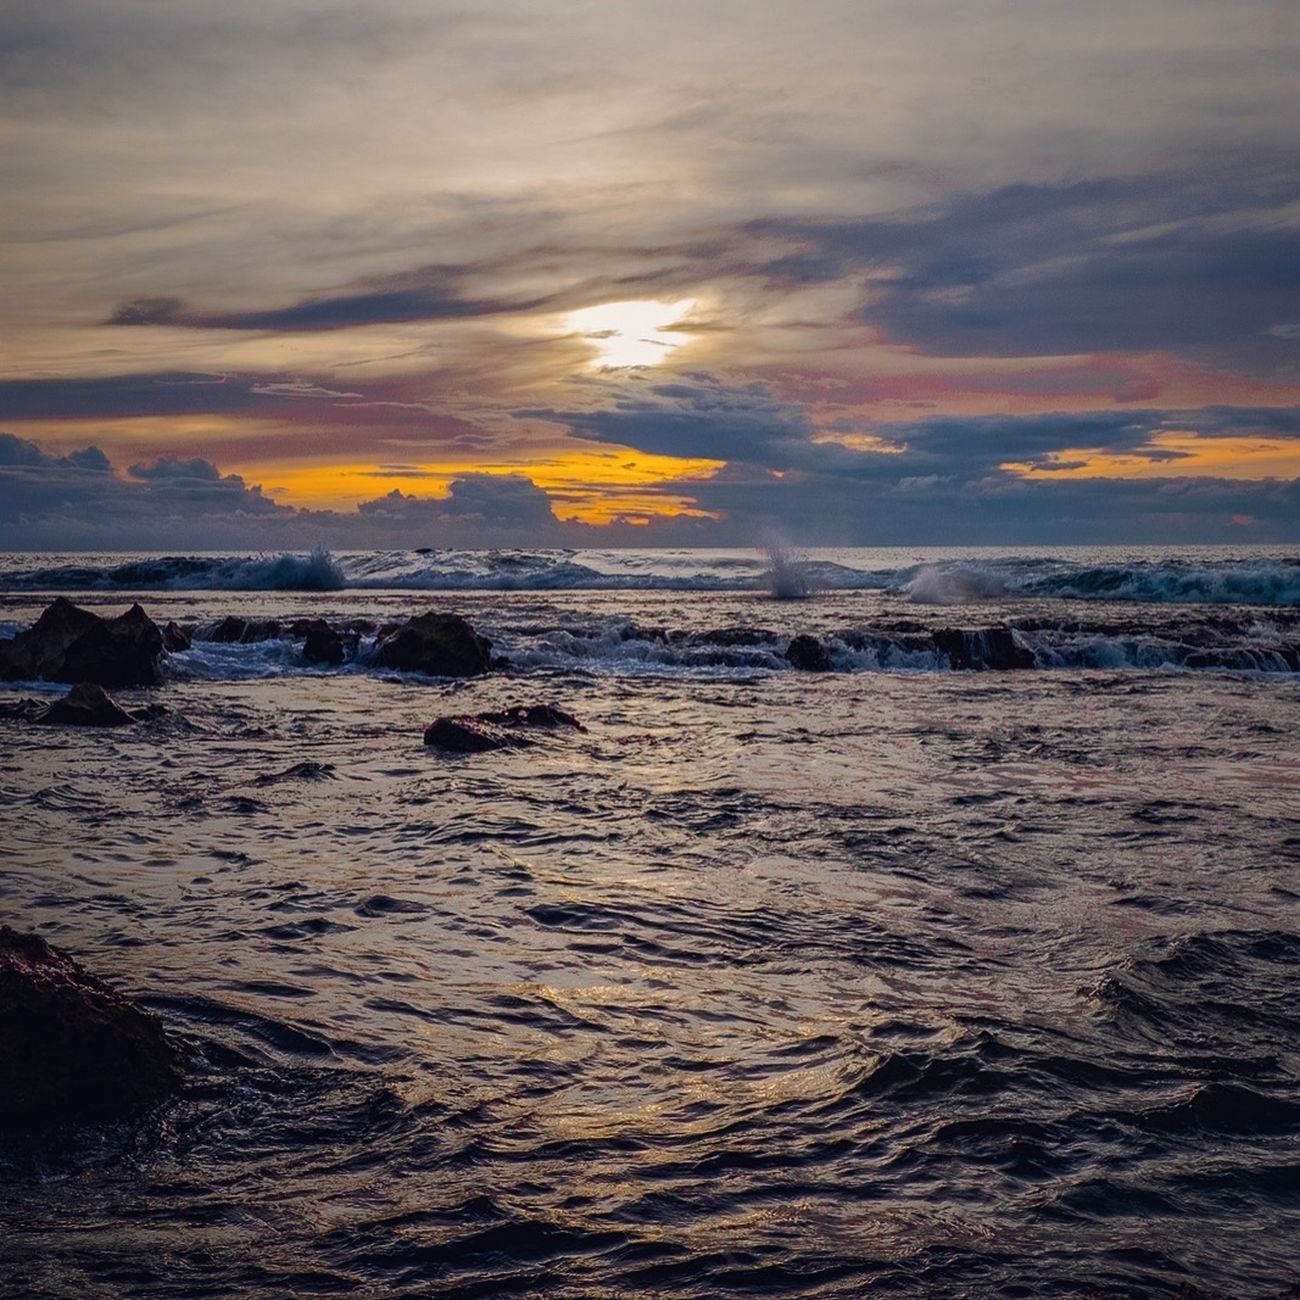 The tide pulls me back... Sunset Scenics Water Sea Beauty In Nature Tranquil Scene Tranquility Rippled Waterfront Idyllic Nature Cloud - Sky Sky Wave Remote Calm Seascape Majestic Non-urban Scene